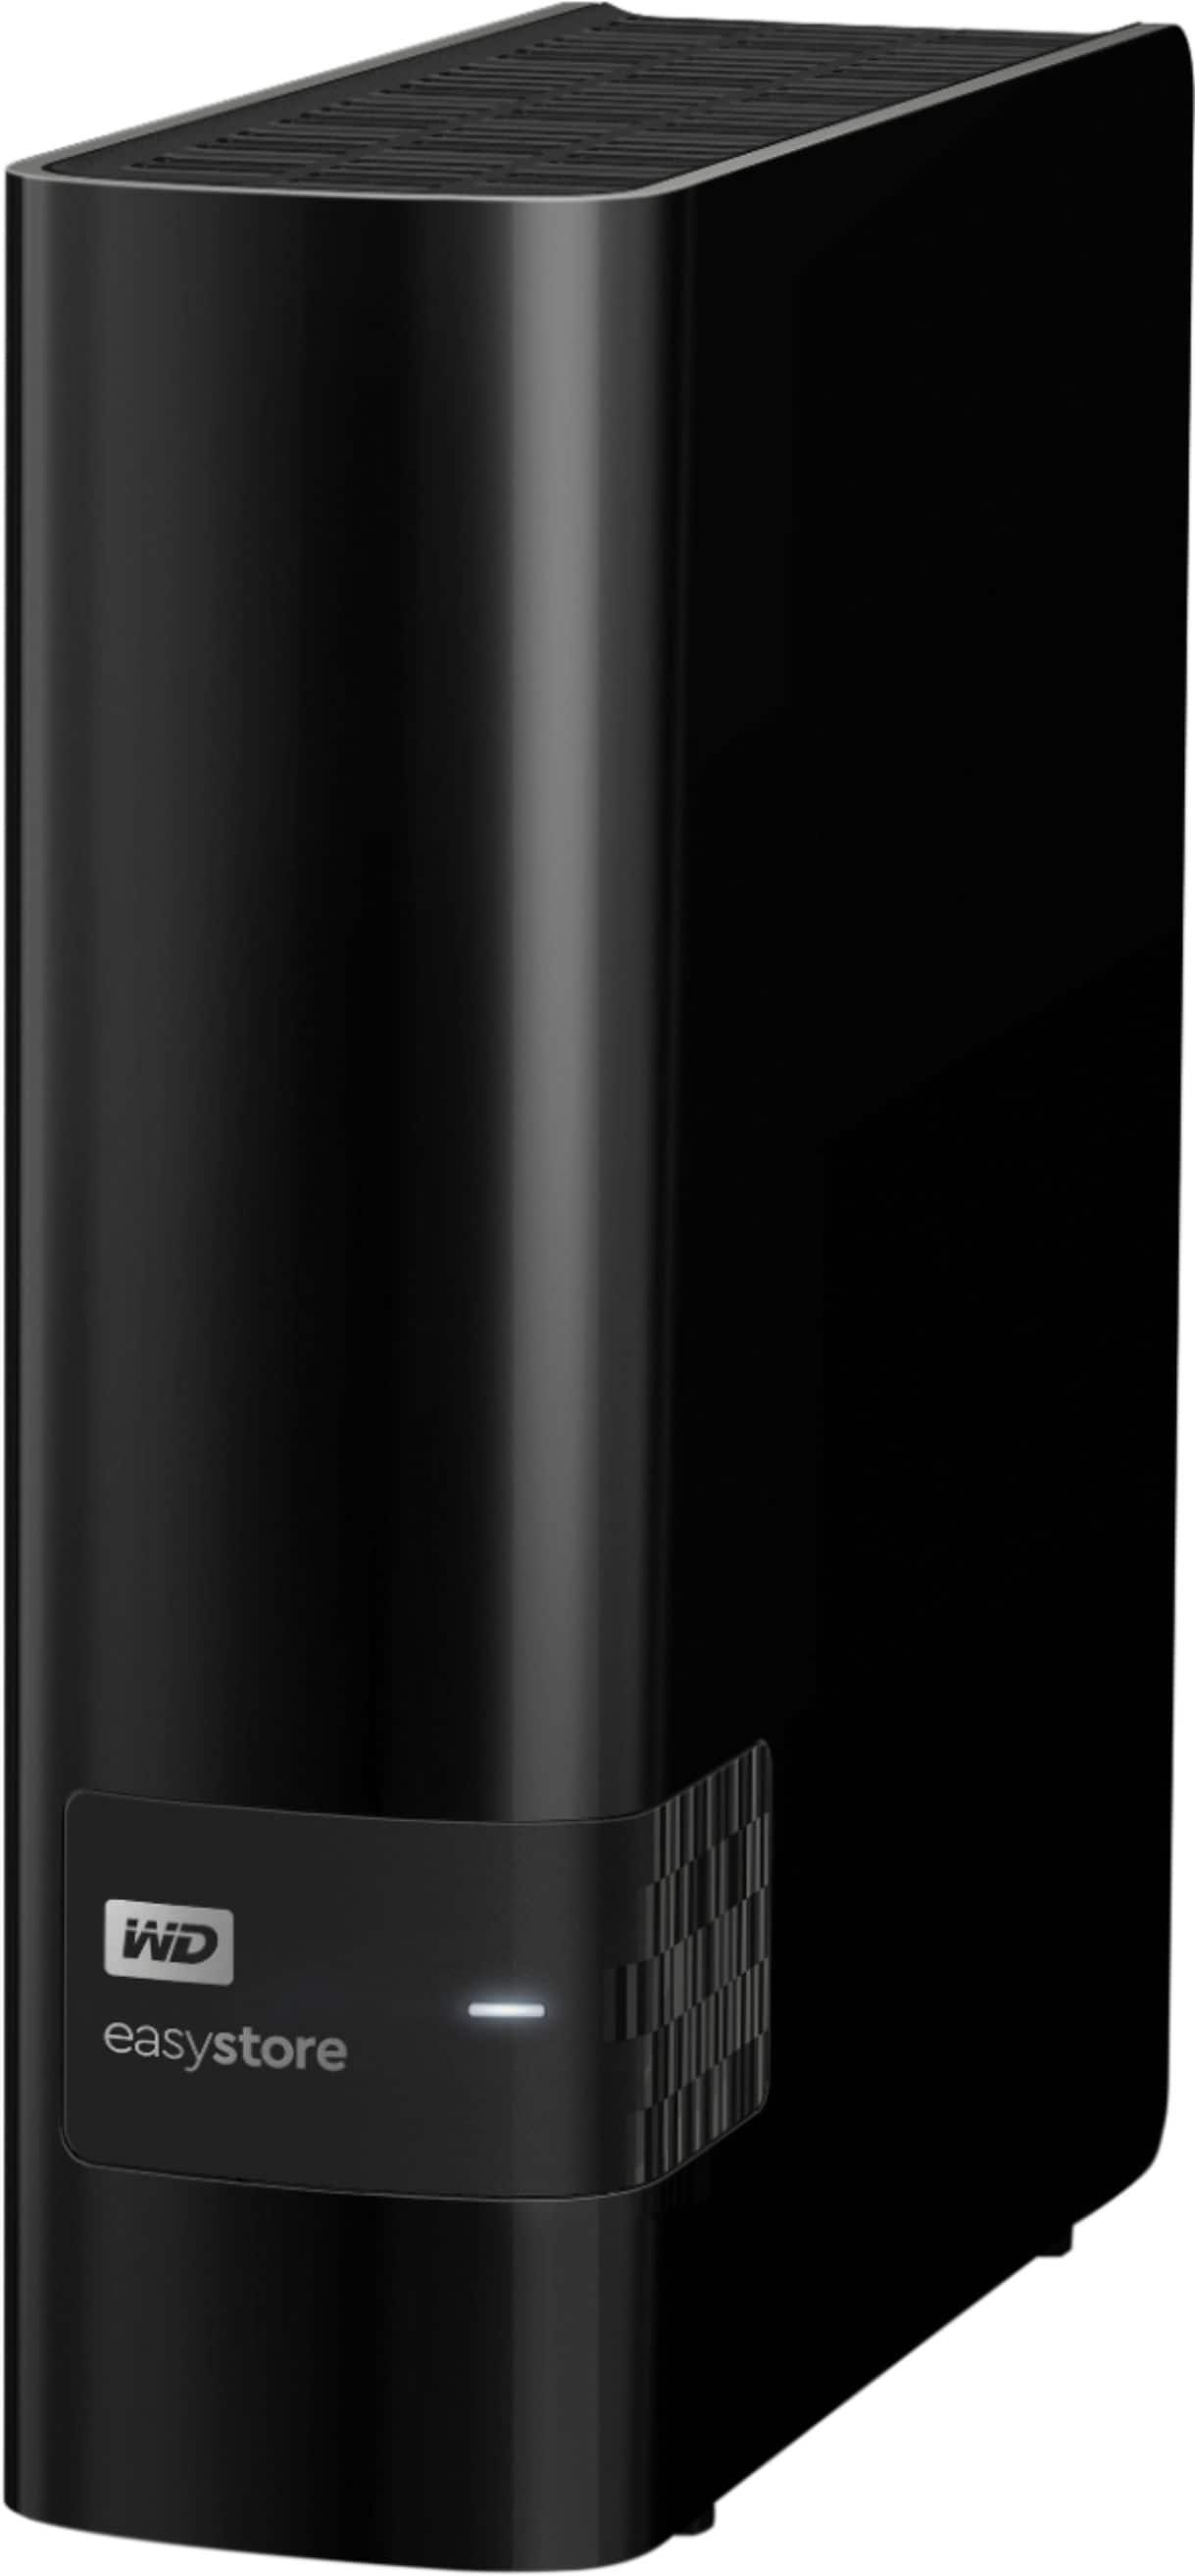 WD - easystore 12TB External USB 3.0 Hard Drive - Black - $189.99 @ Best Buy